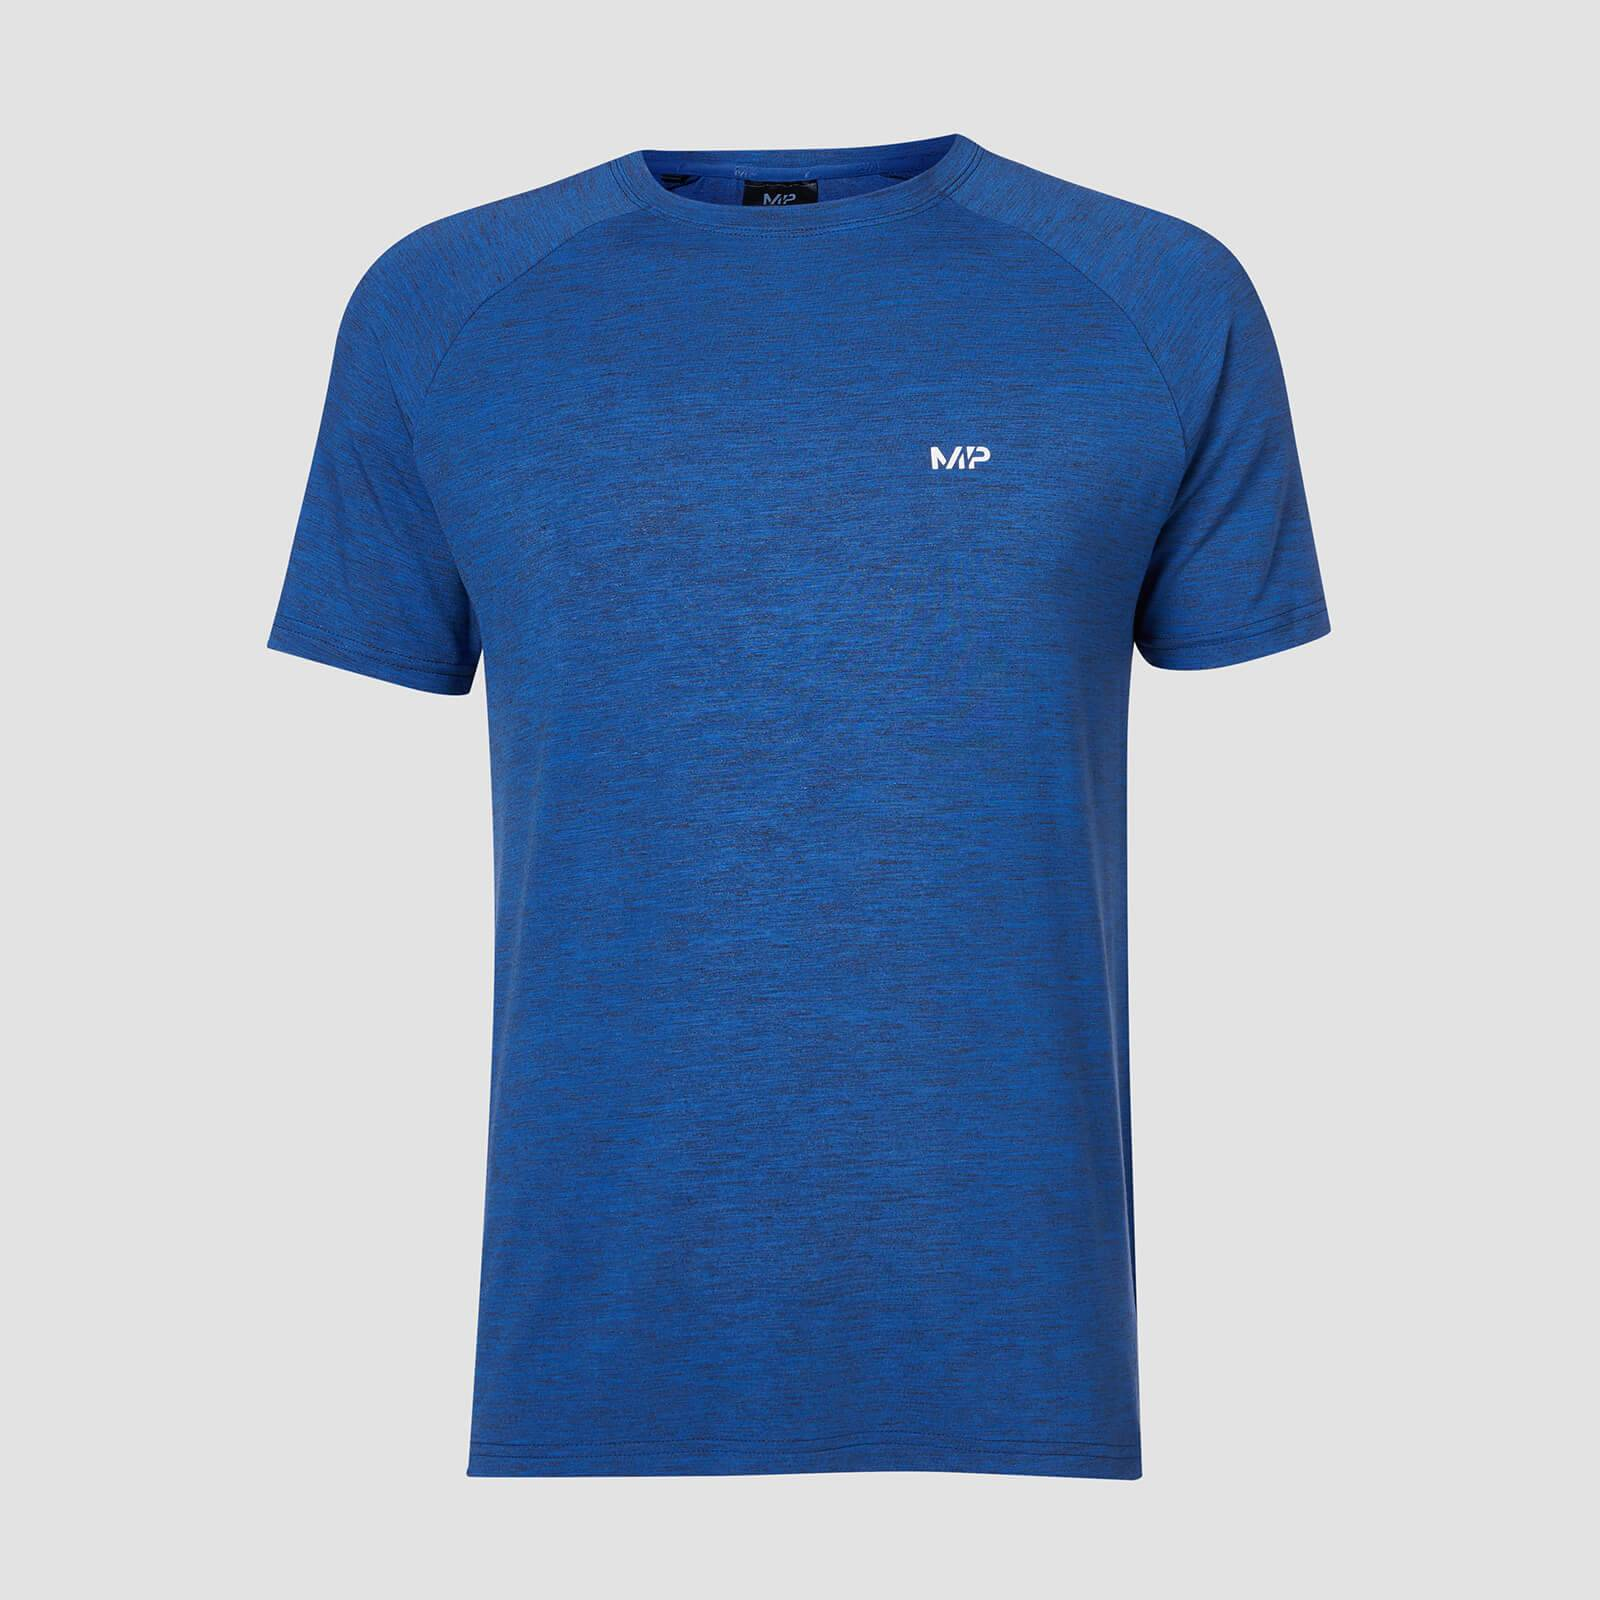 Mp T-shirt Performance Short Sleeve  - Blu cobalto/Nero - XXS